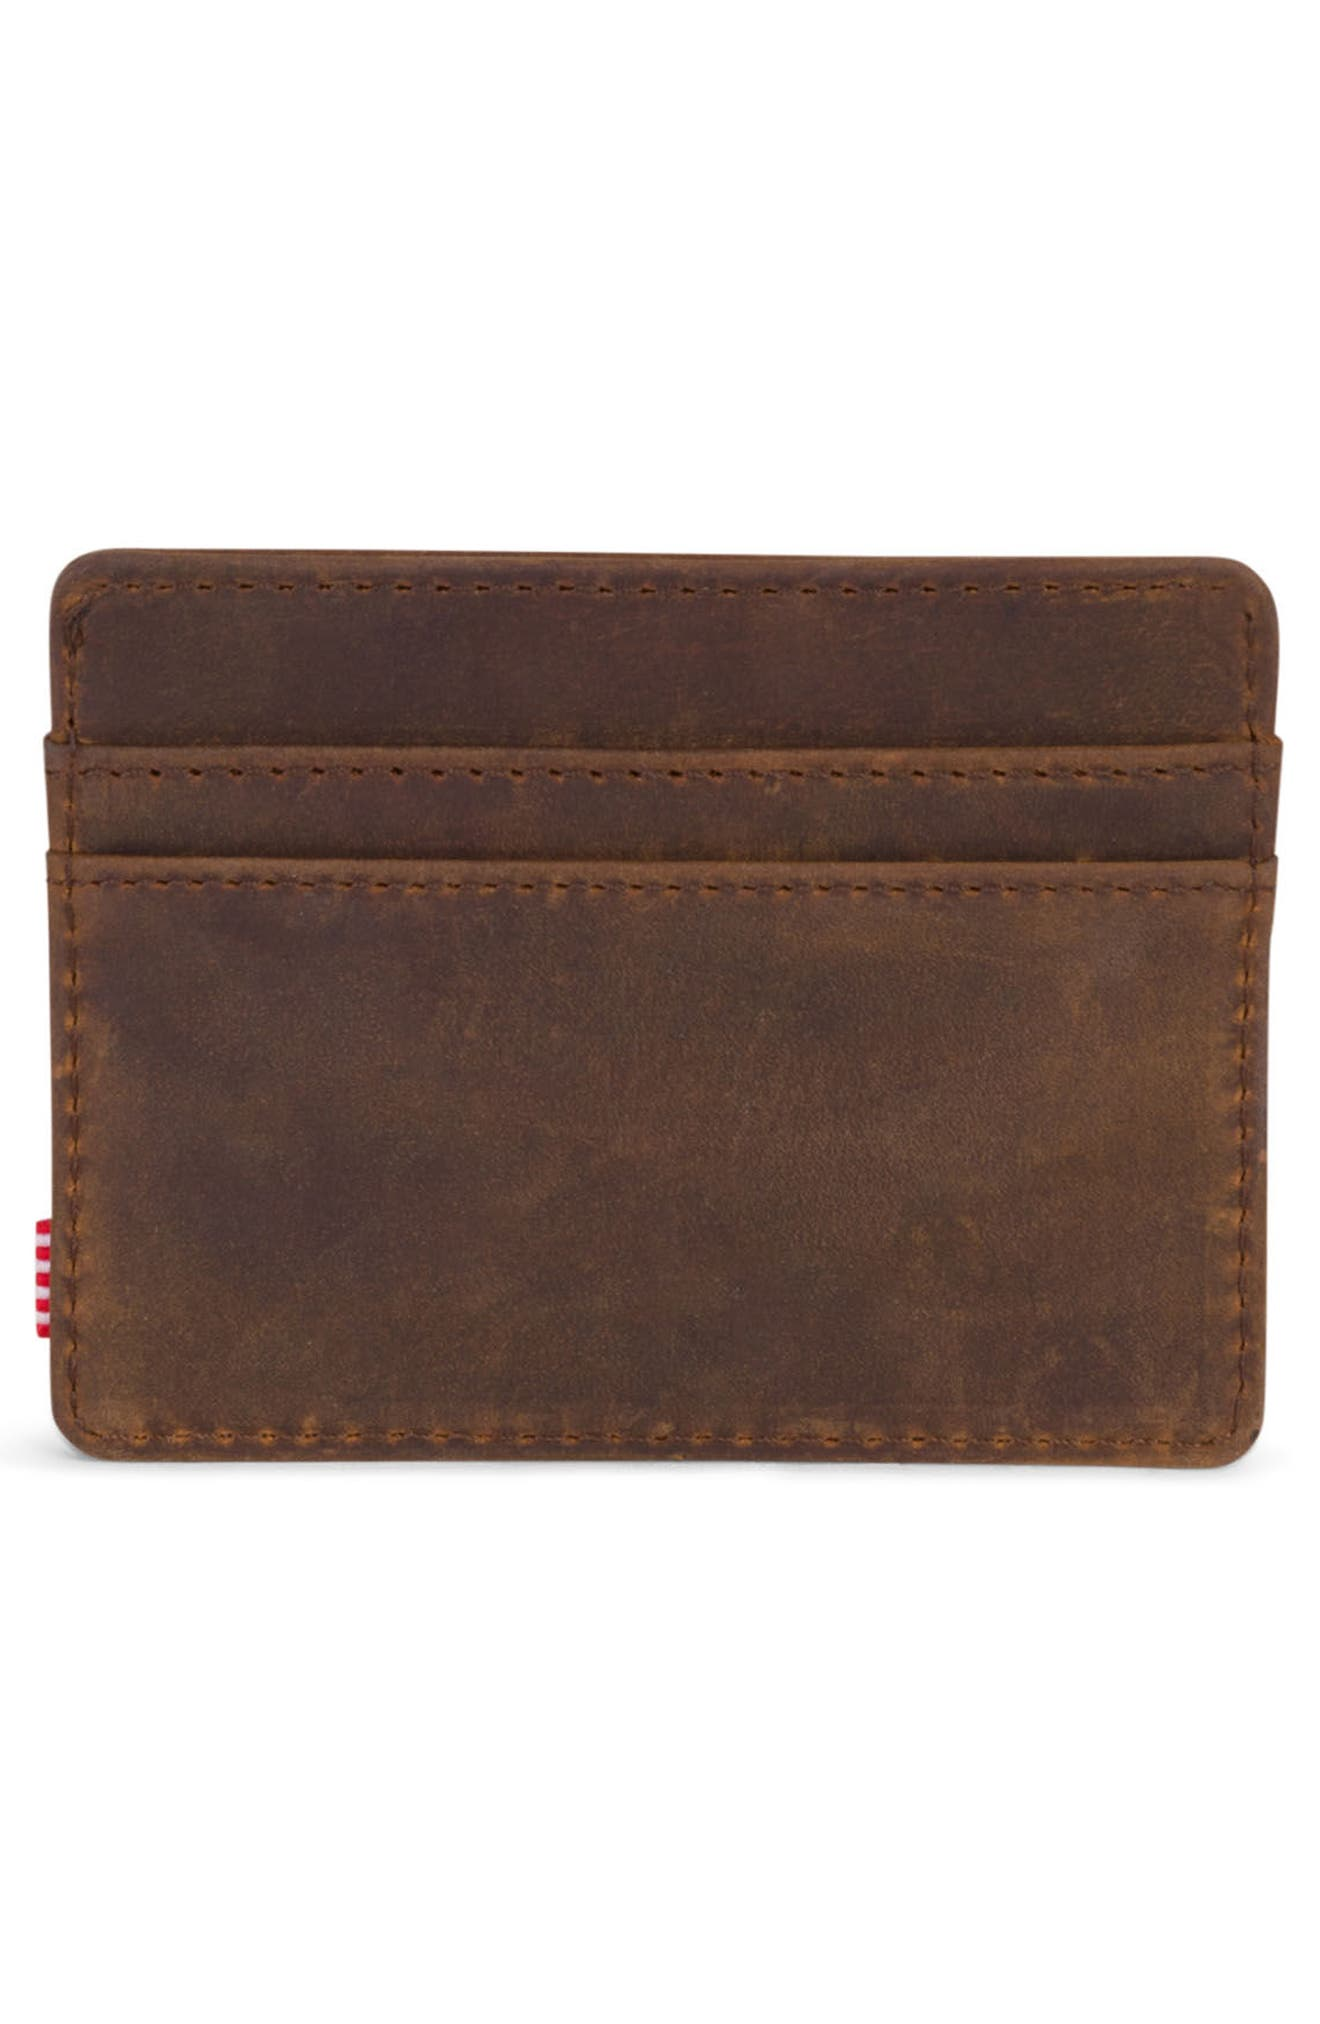 Charlie Leather Card Case,                             Alternate thumbnail 2, color,                             Brown